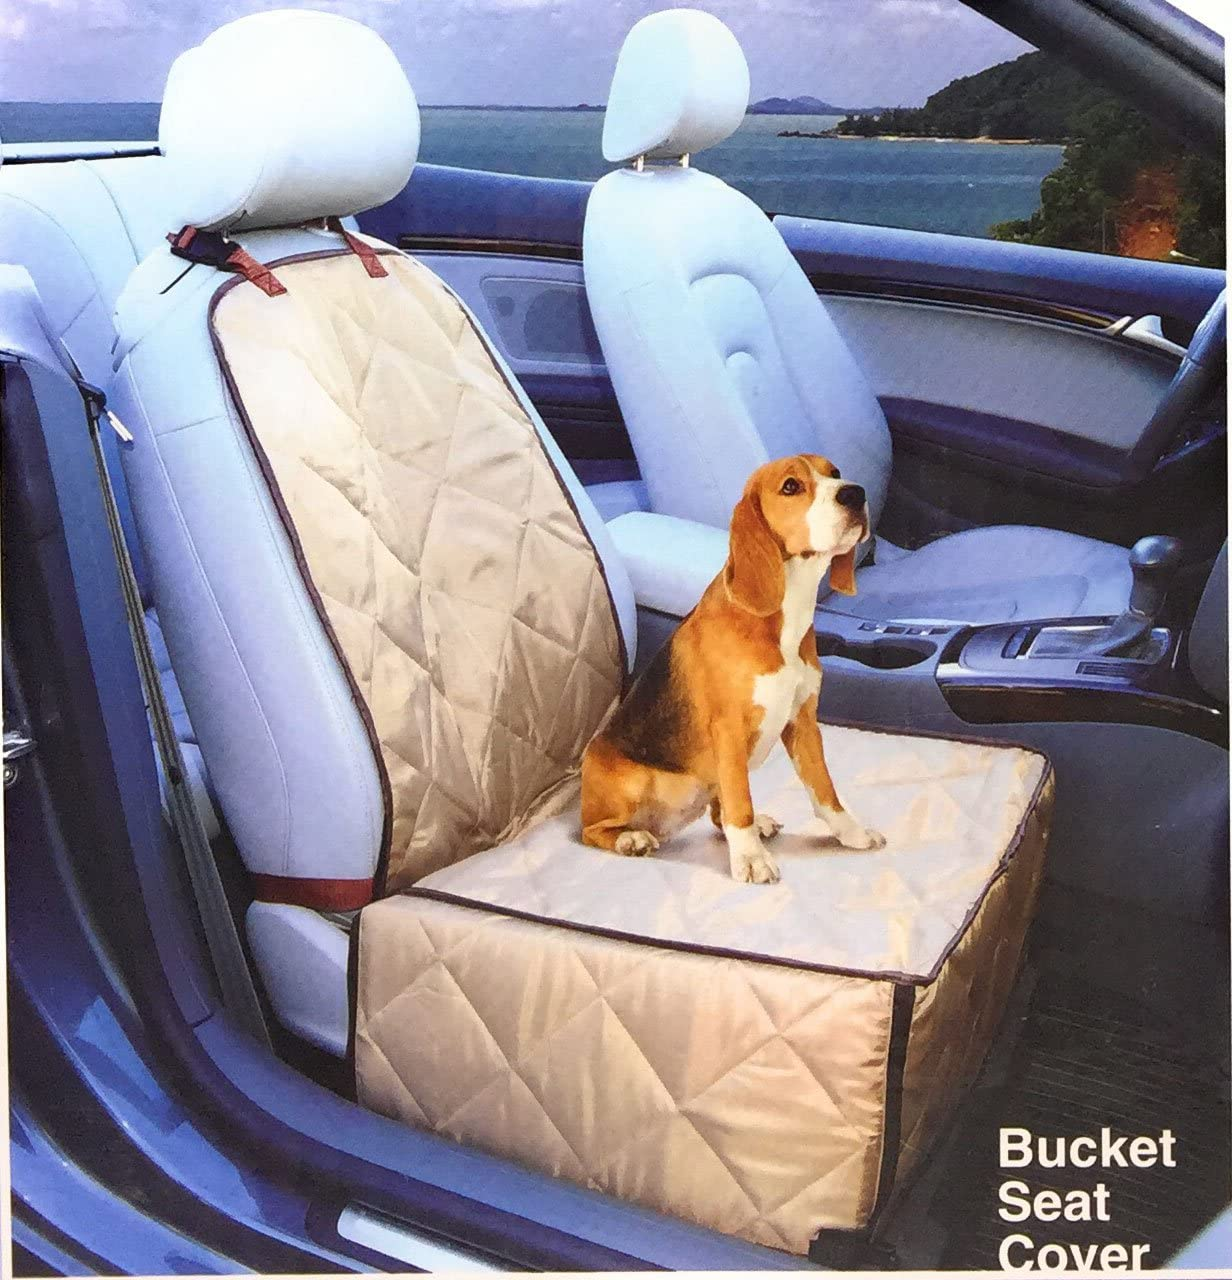 Dog Car Seat Cover – 2 in 1 Bucket Seat Cover and Car Pet Seat – with Seat Anchor Strap and Dog Leash Connector